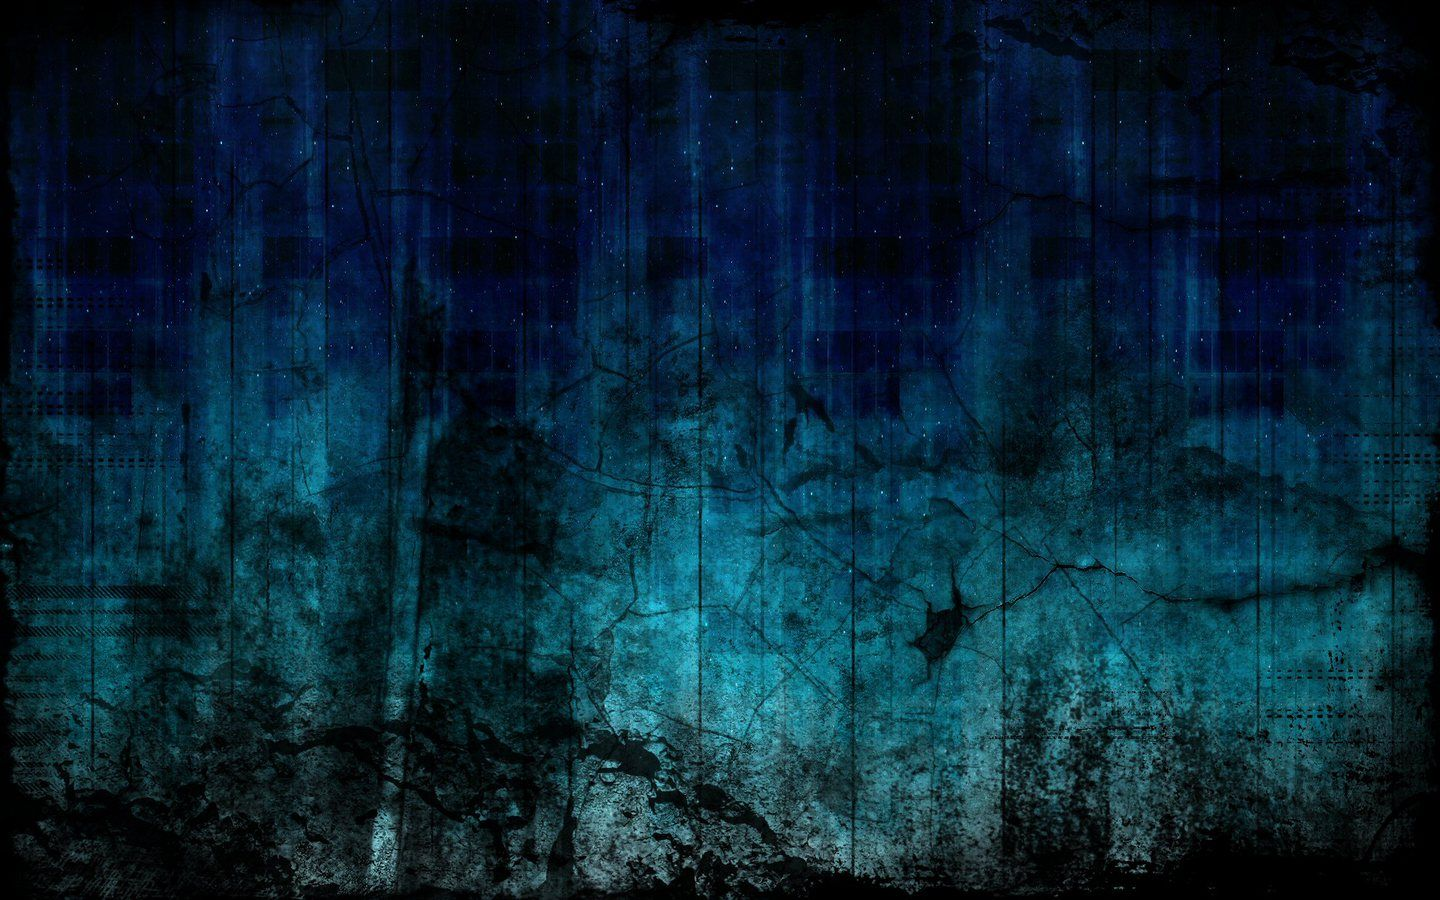 abstract texture wallpapers - photo #4